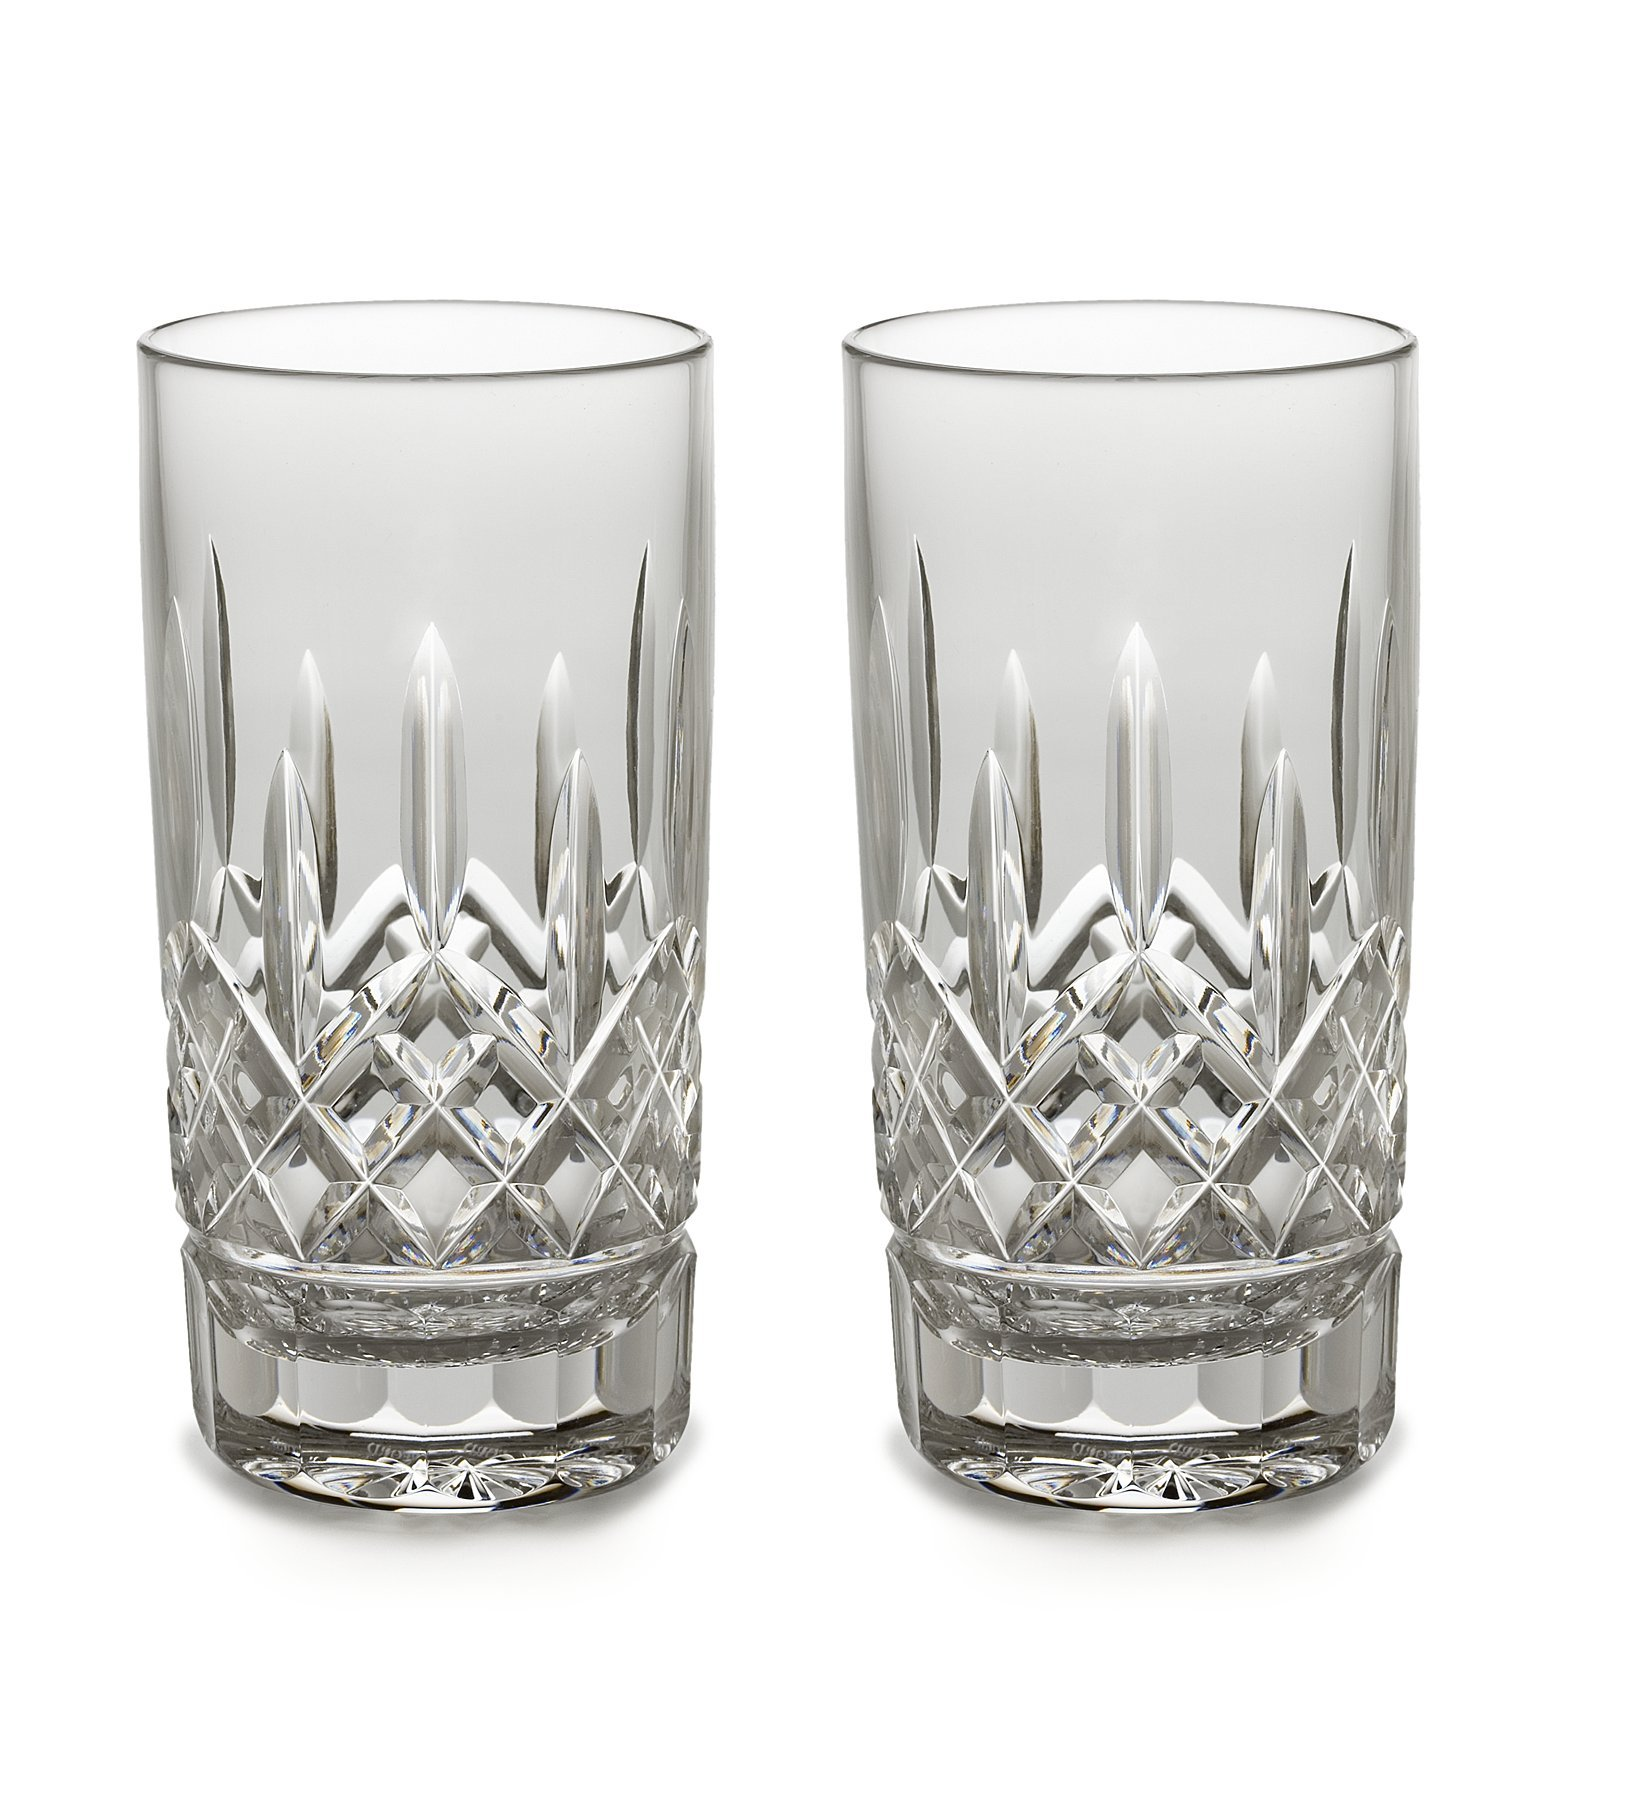 Waterford Lismore High Ball Pair, 12-Ounce by Waterford  Crystal